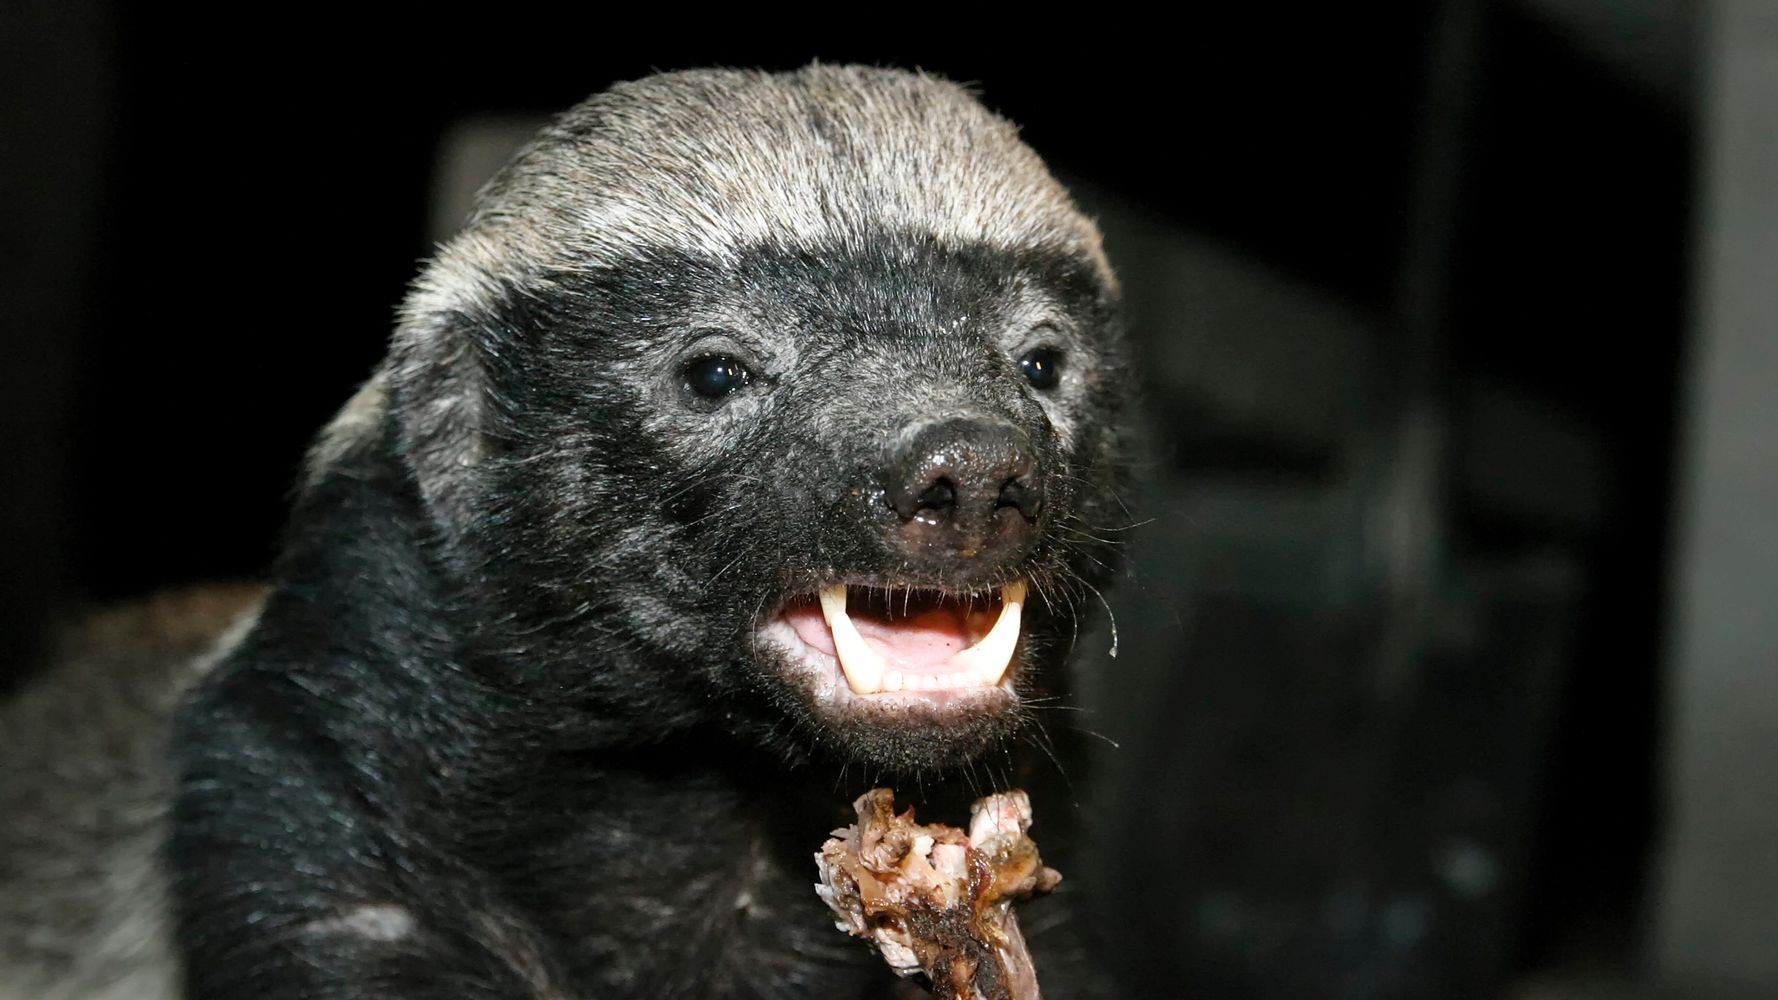 You'll Have Mad Respect For Honey Badger After Epic Fight Against Python, Jackals